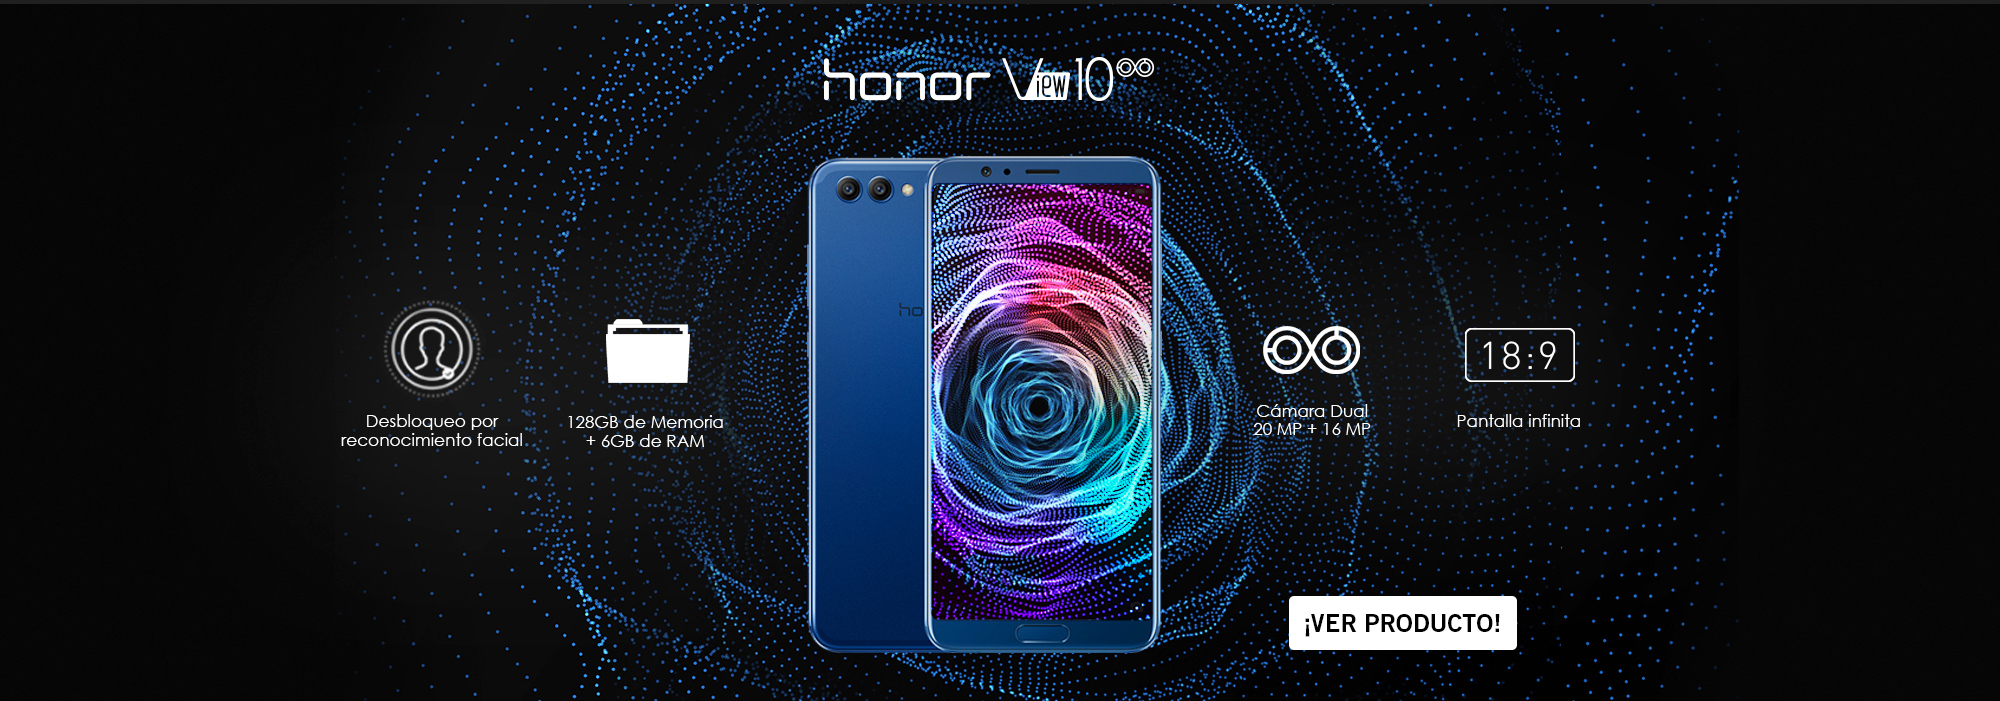 Honor view 10 - Phone House